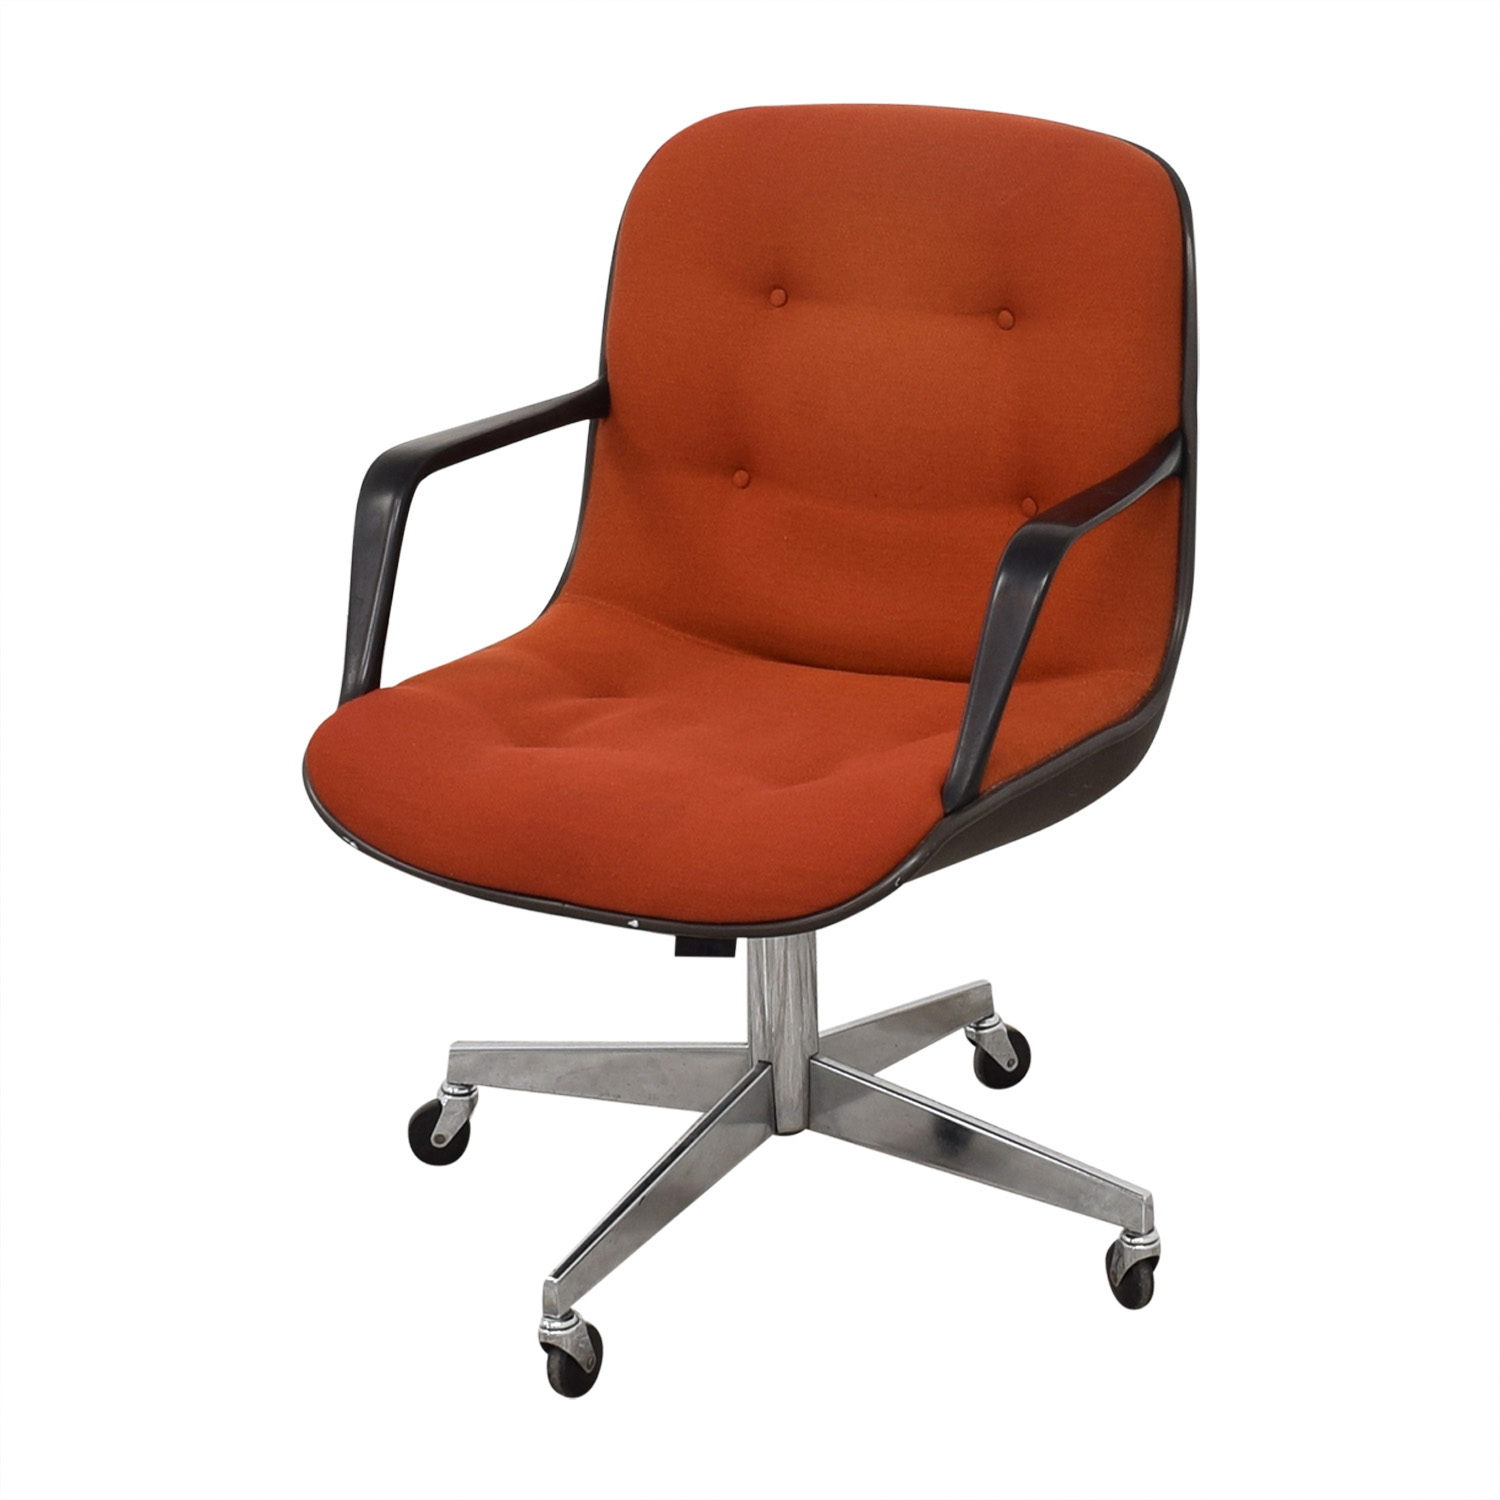 Fine 47 Off Steelcase Steelcase Mid Century Modern Office Chair Chairs Forskolin Free Trial Chair Design Images Forskolin Free Trialorg